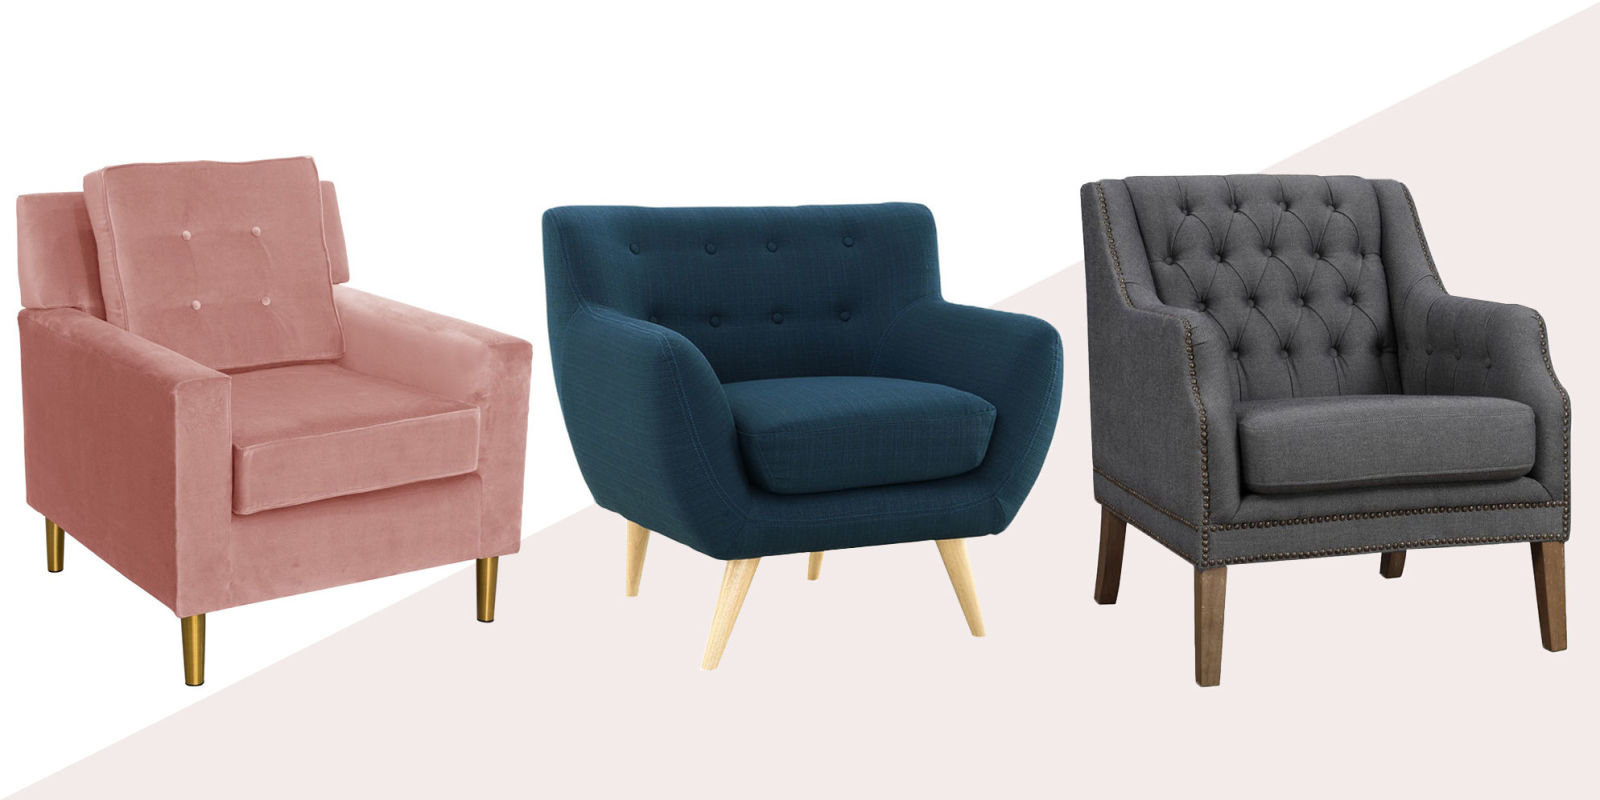 13 Best Arm Chairs in 2018